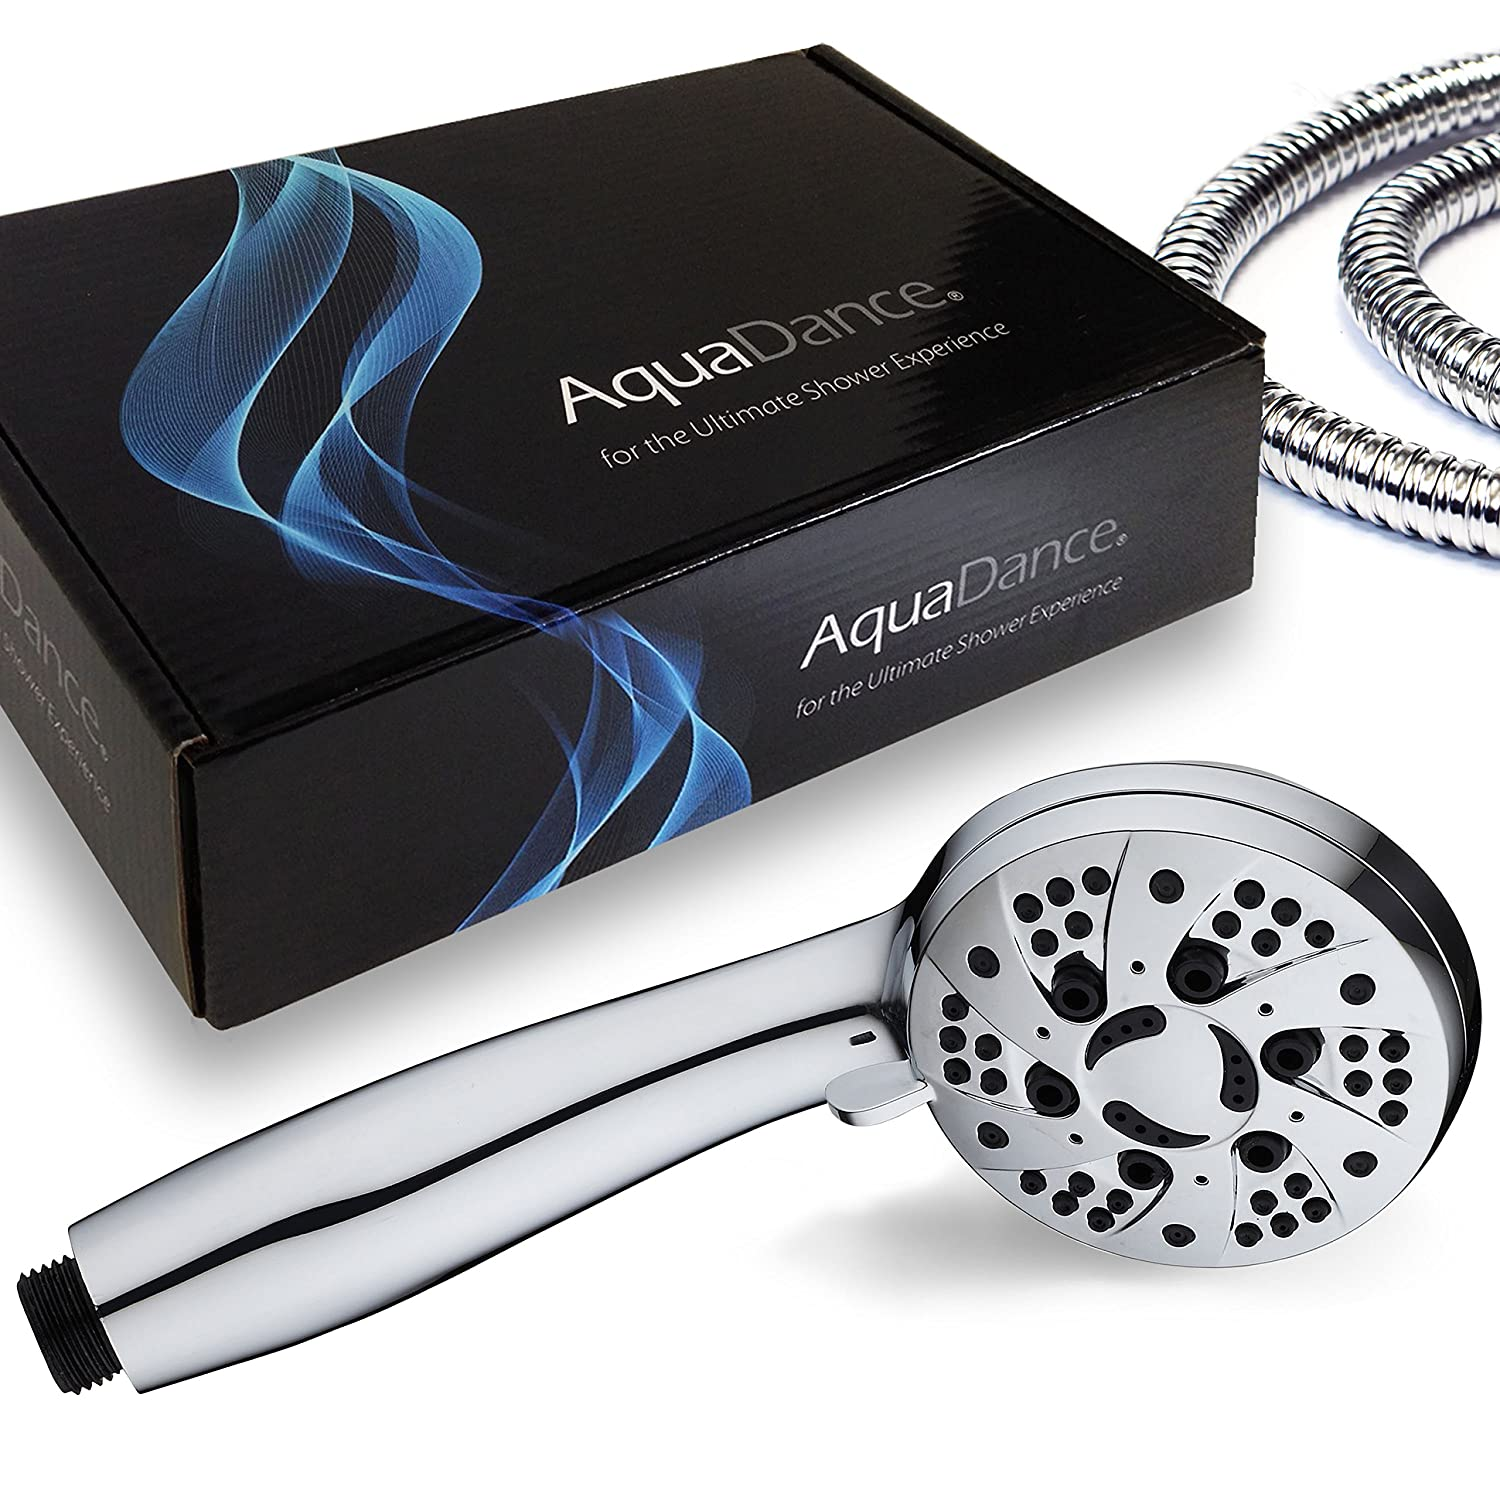 AquaDance High Pressure 6Setting 35 Chrome Face Handheld Shower with Hose for the Ultimate Shower